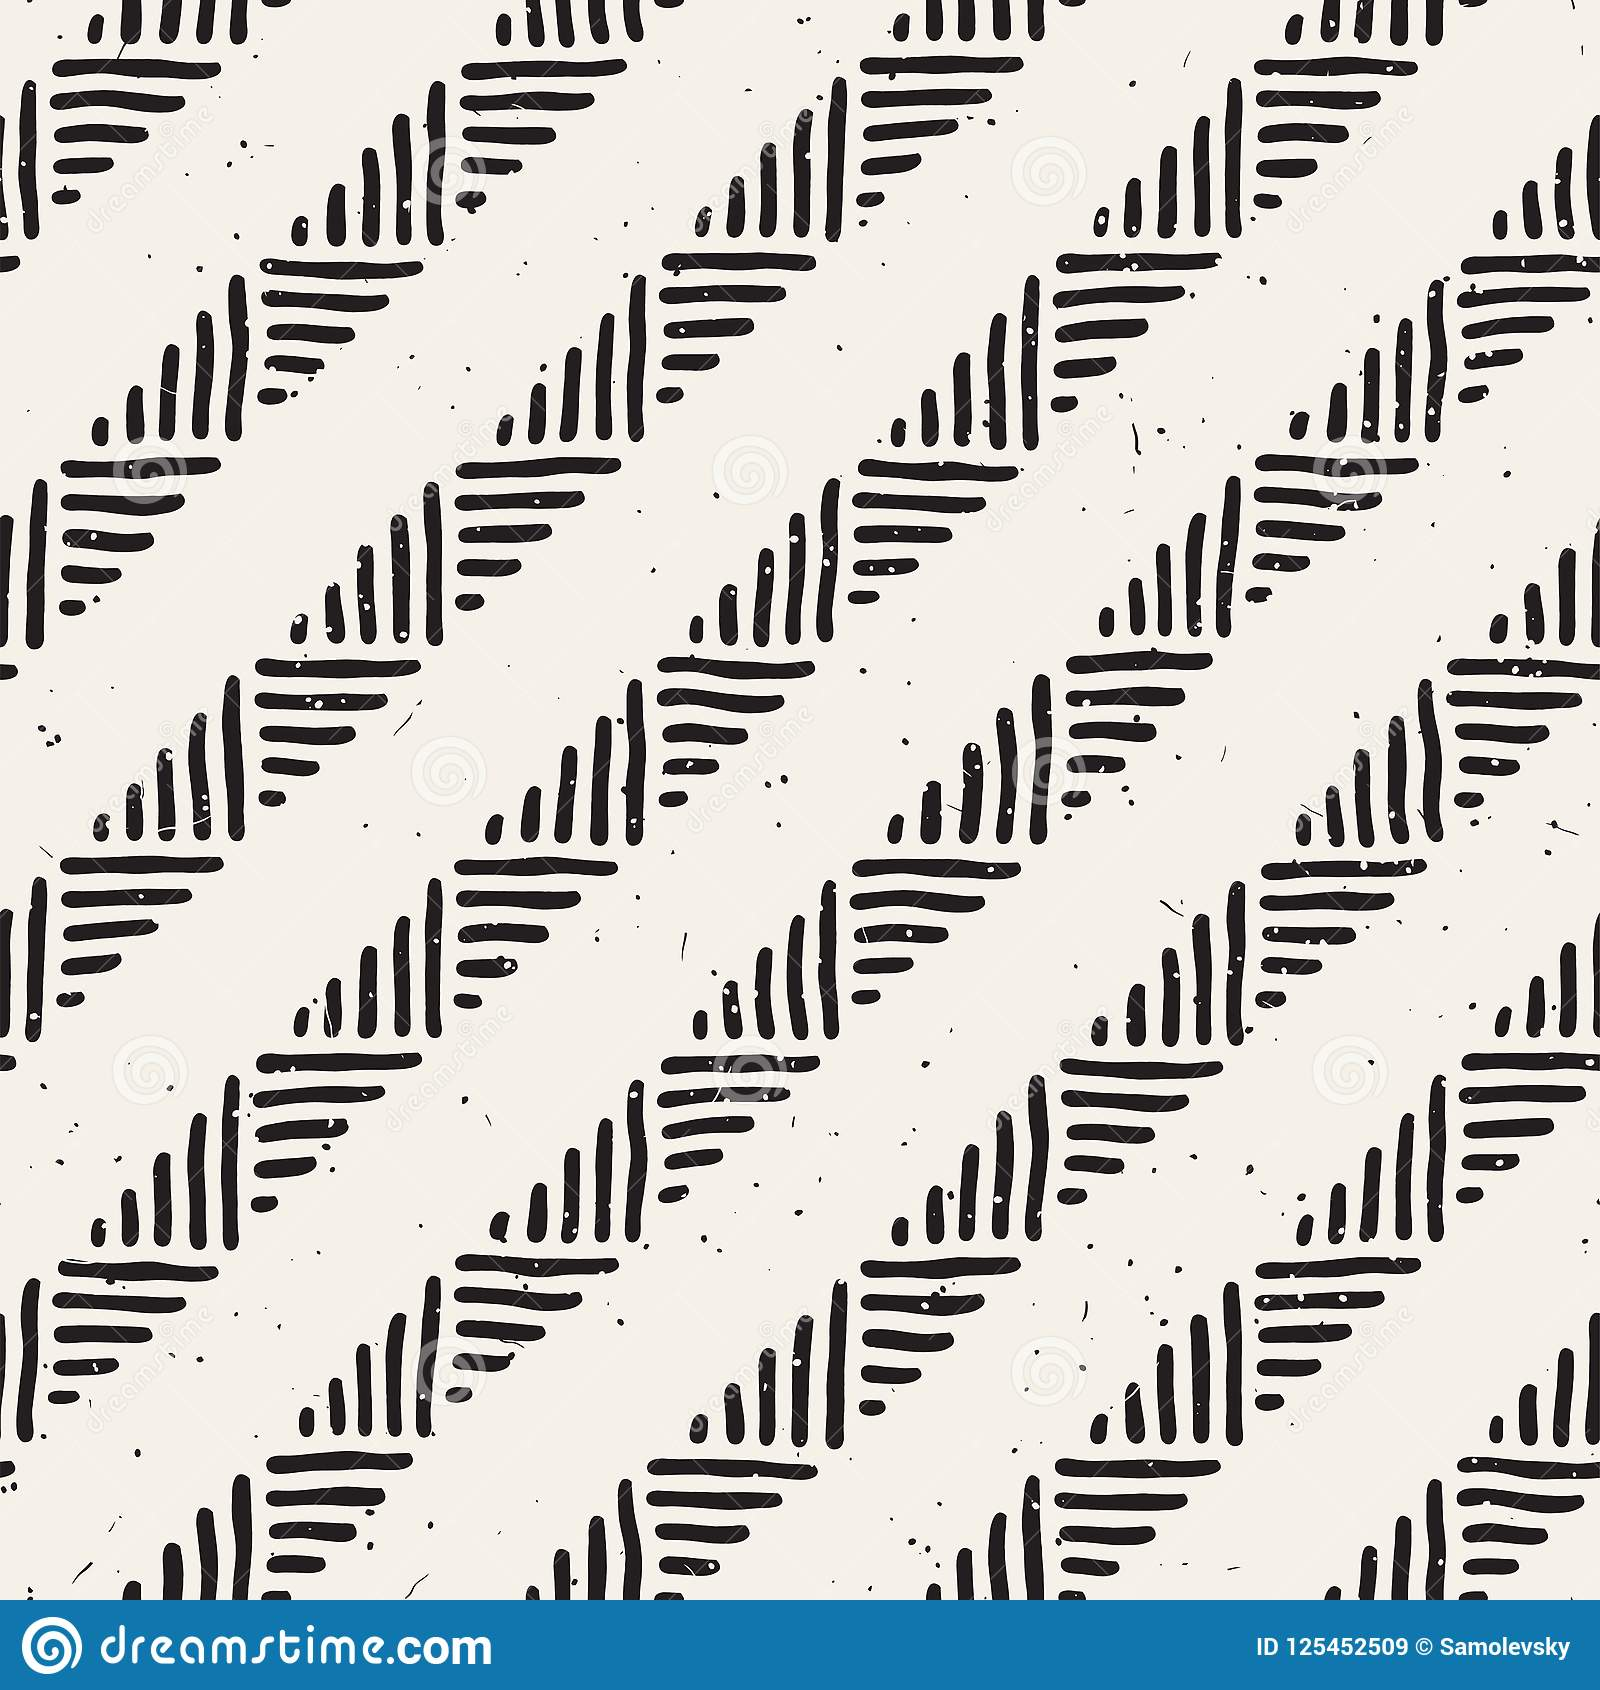 Seamless geometric doodle lines pattern in black and white. Adstract hand drawn retro texture.